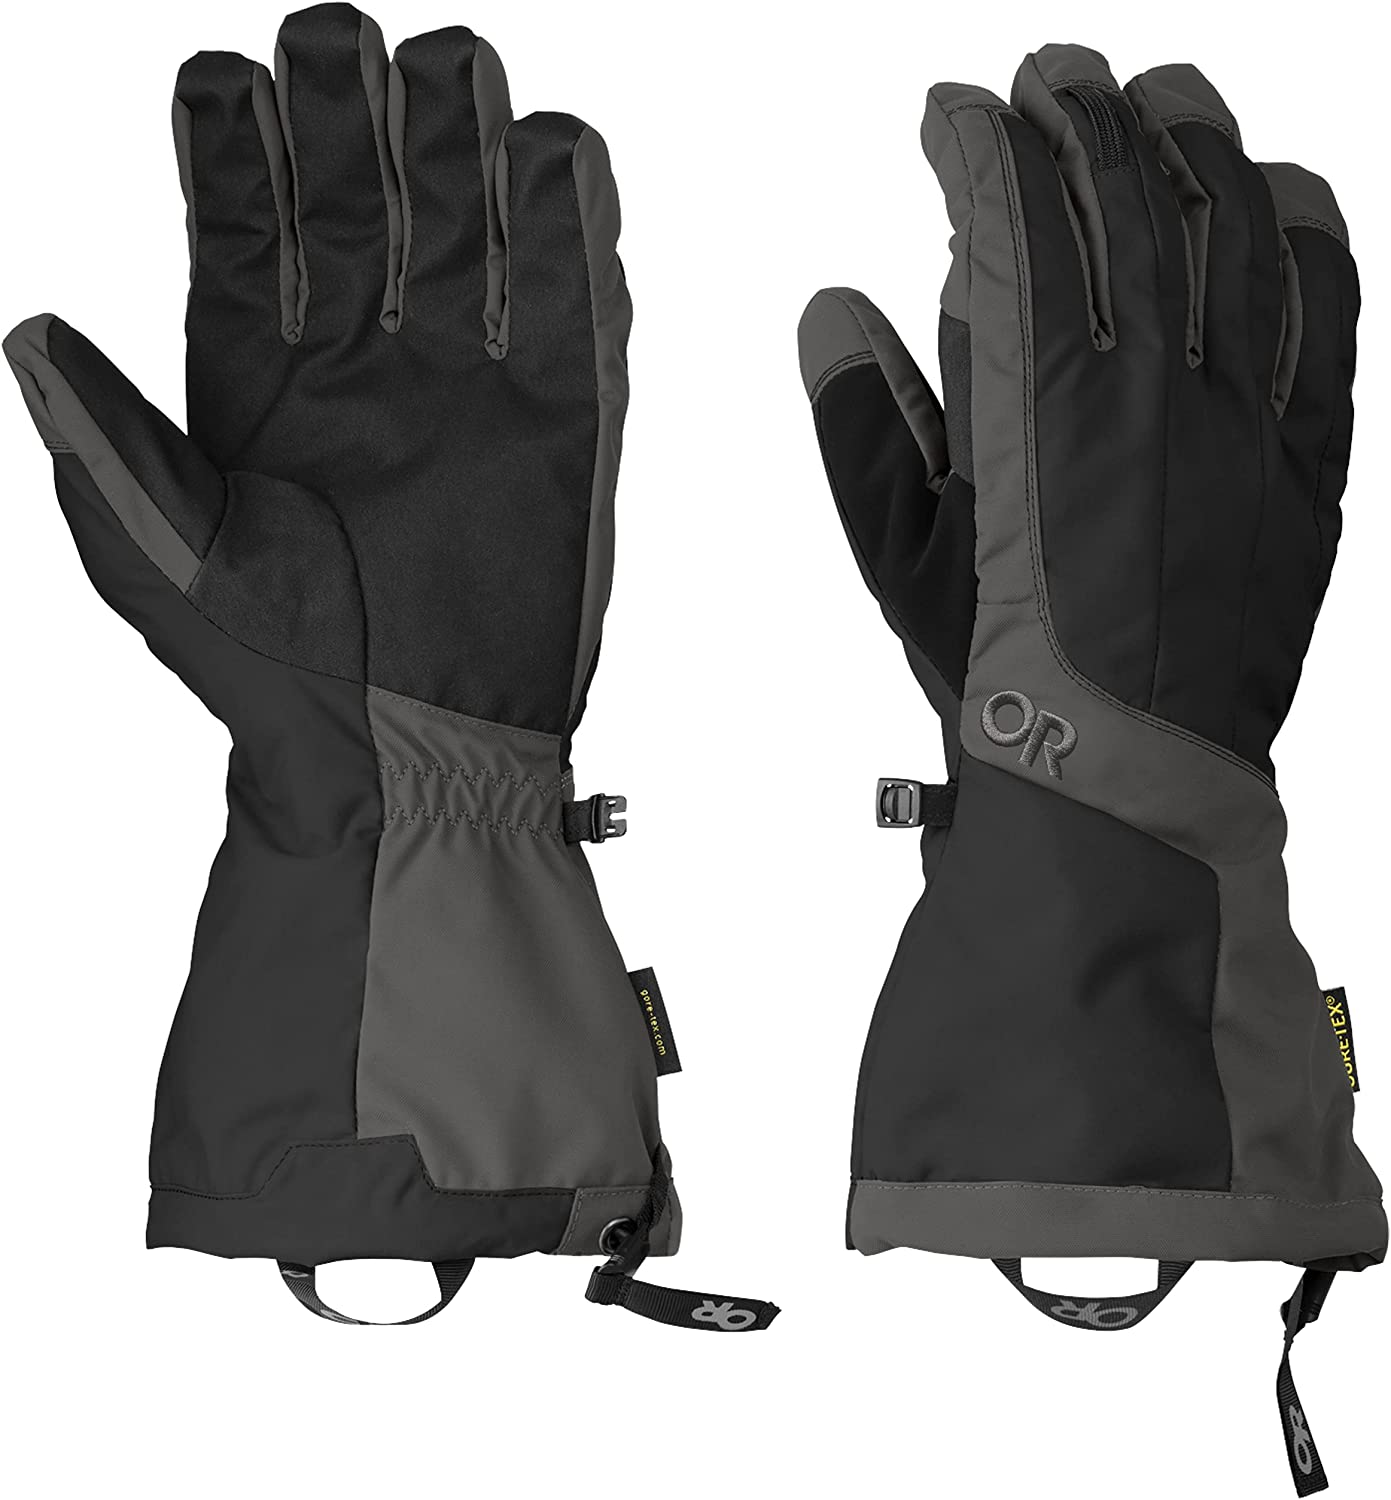 Outdoor Research Men's Financial sales sale Arete GORE-TEX Waterp – Bombing free shipping Gloves